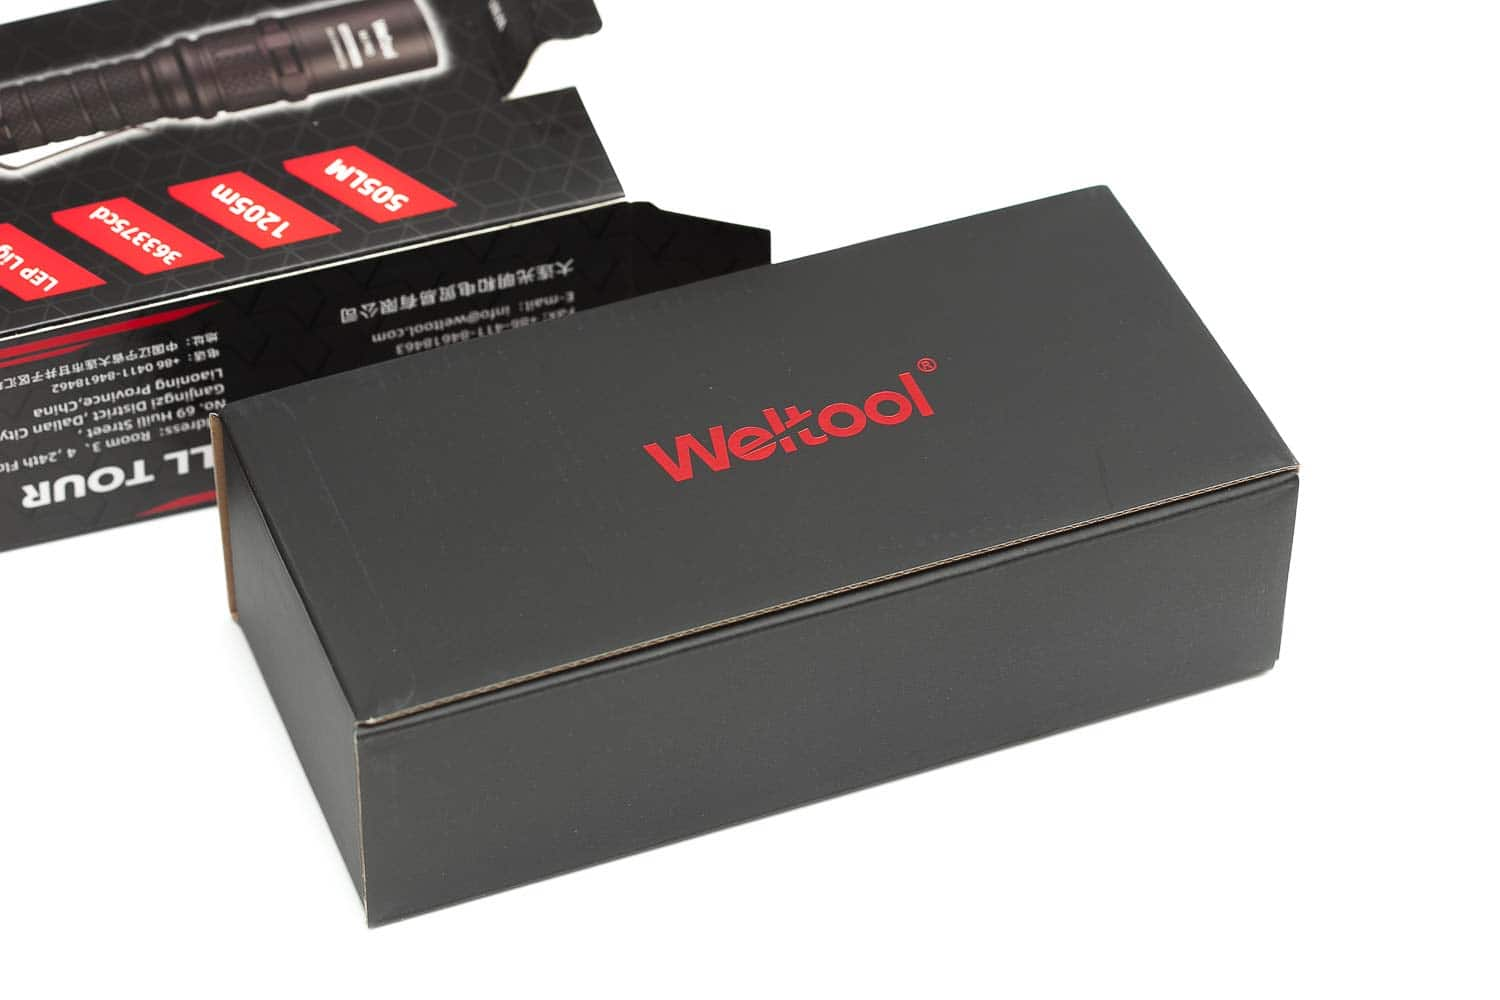 Weltool box